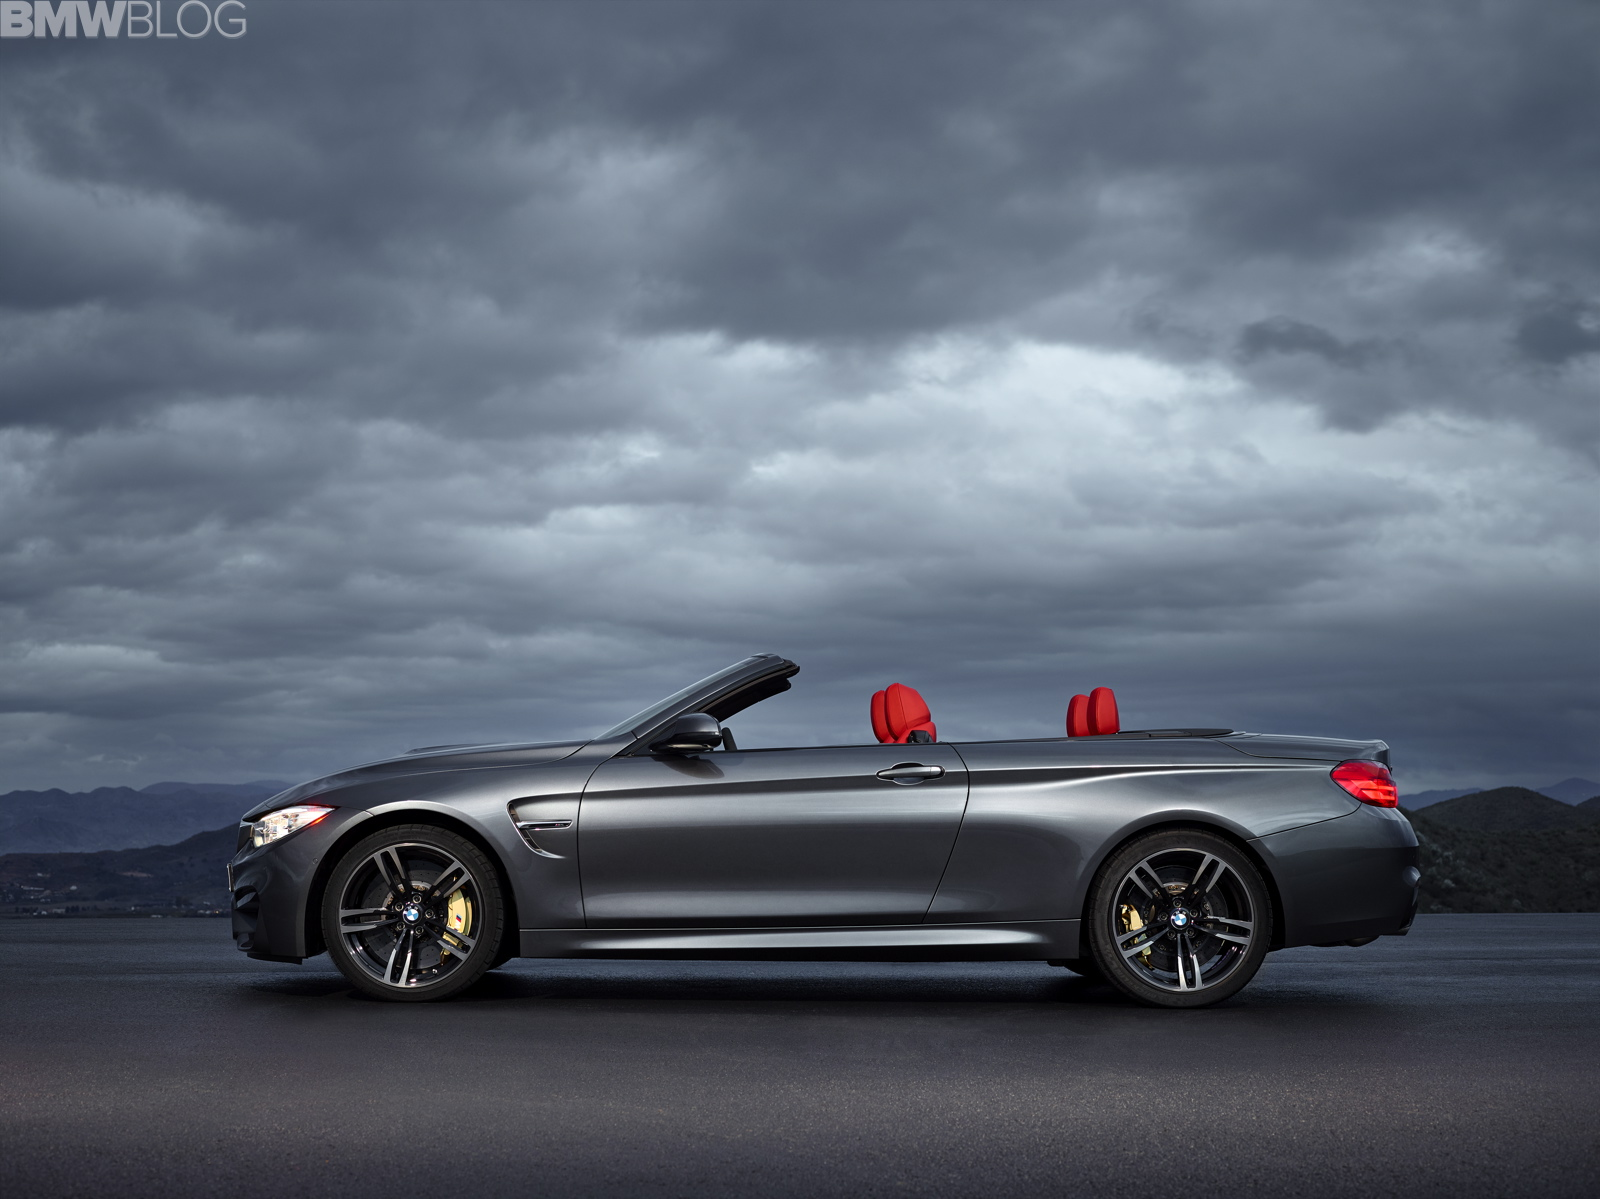 2015 bmw m4 convertible images 31